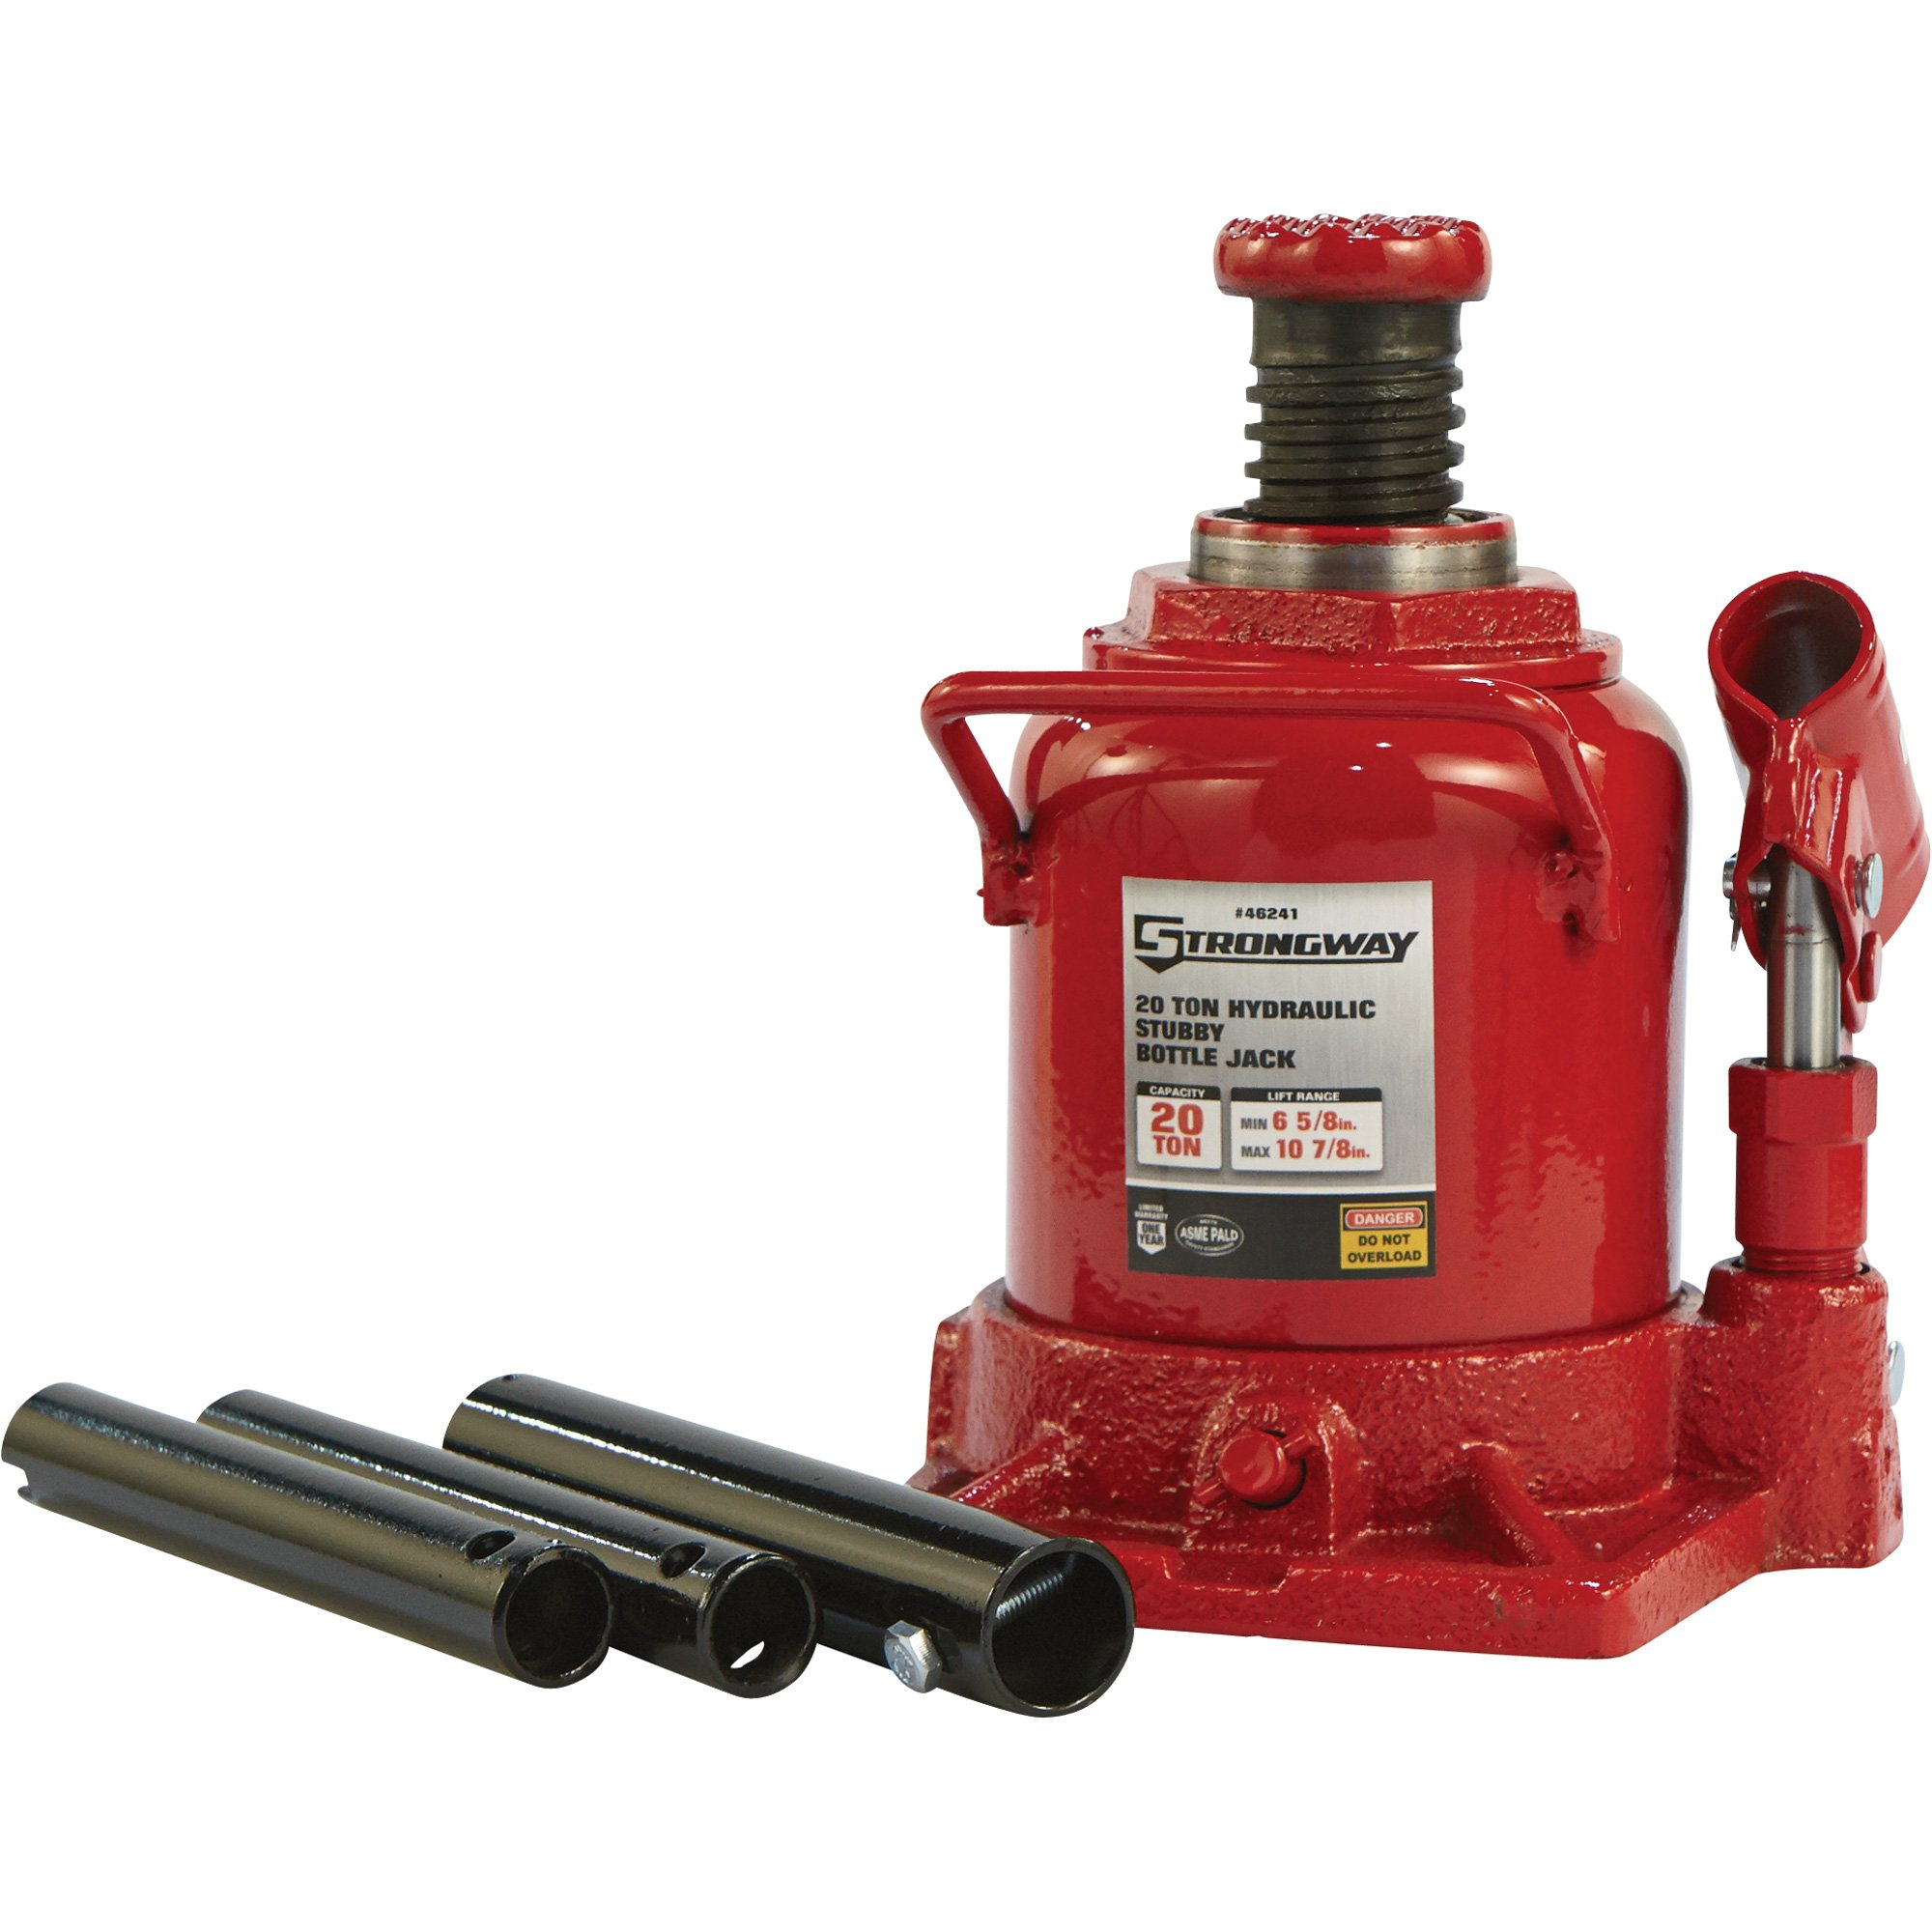 Strongway Hydraulic Stubby Bottle Jack - 20-Ton Capacity, 6 5/8in.-10 7/8in. Lift Range